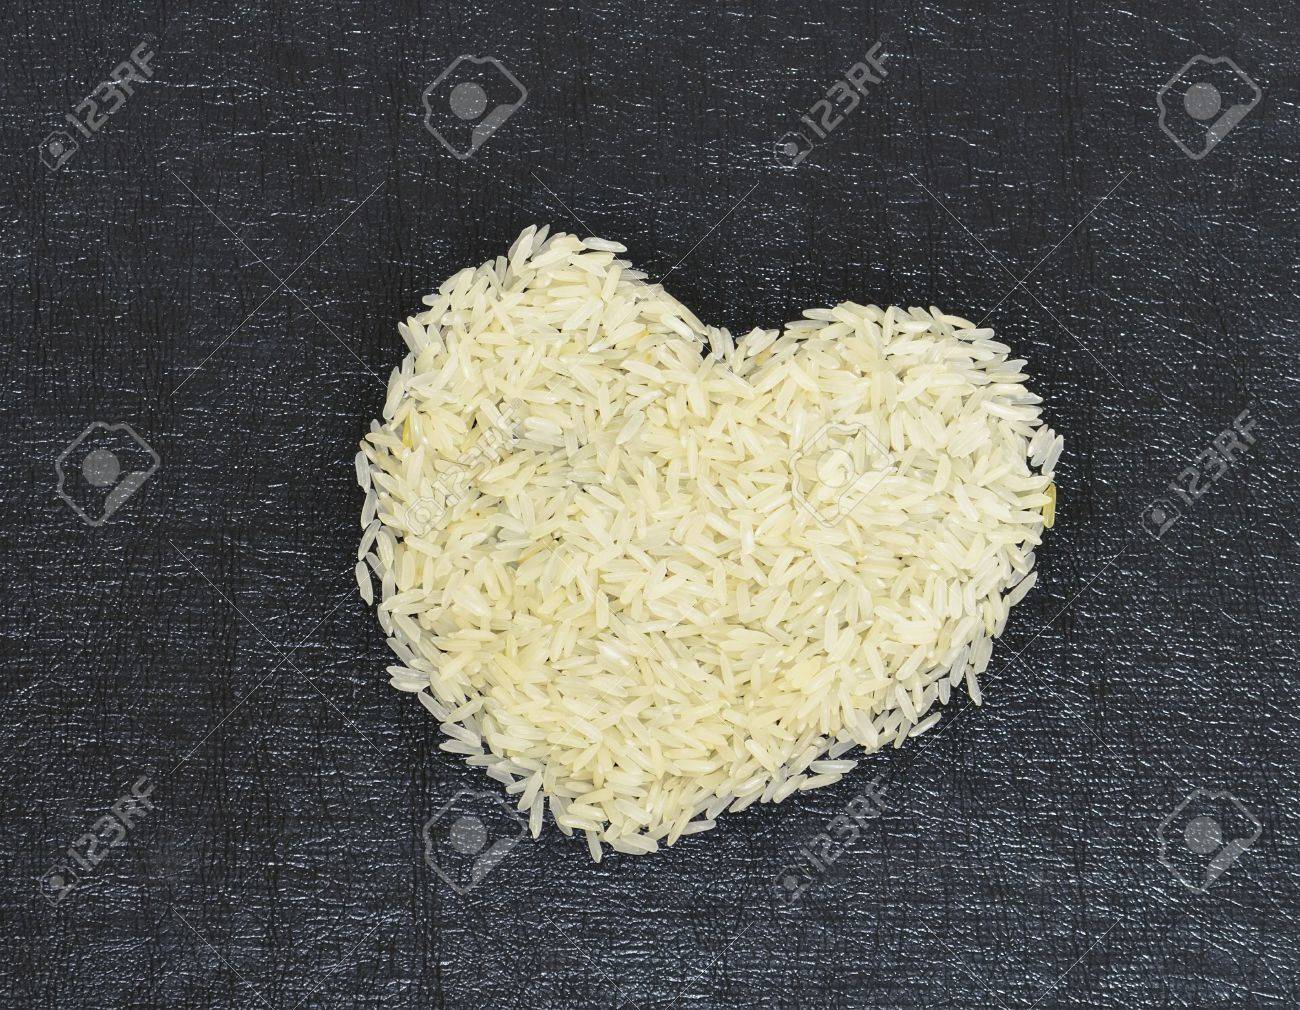 Concept, Jasmine rice picture the heart on black background Stock Photo - 11039687